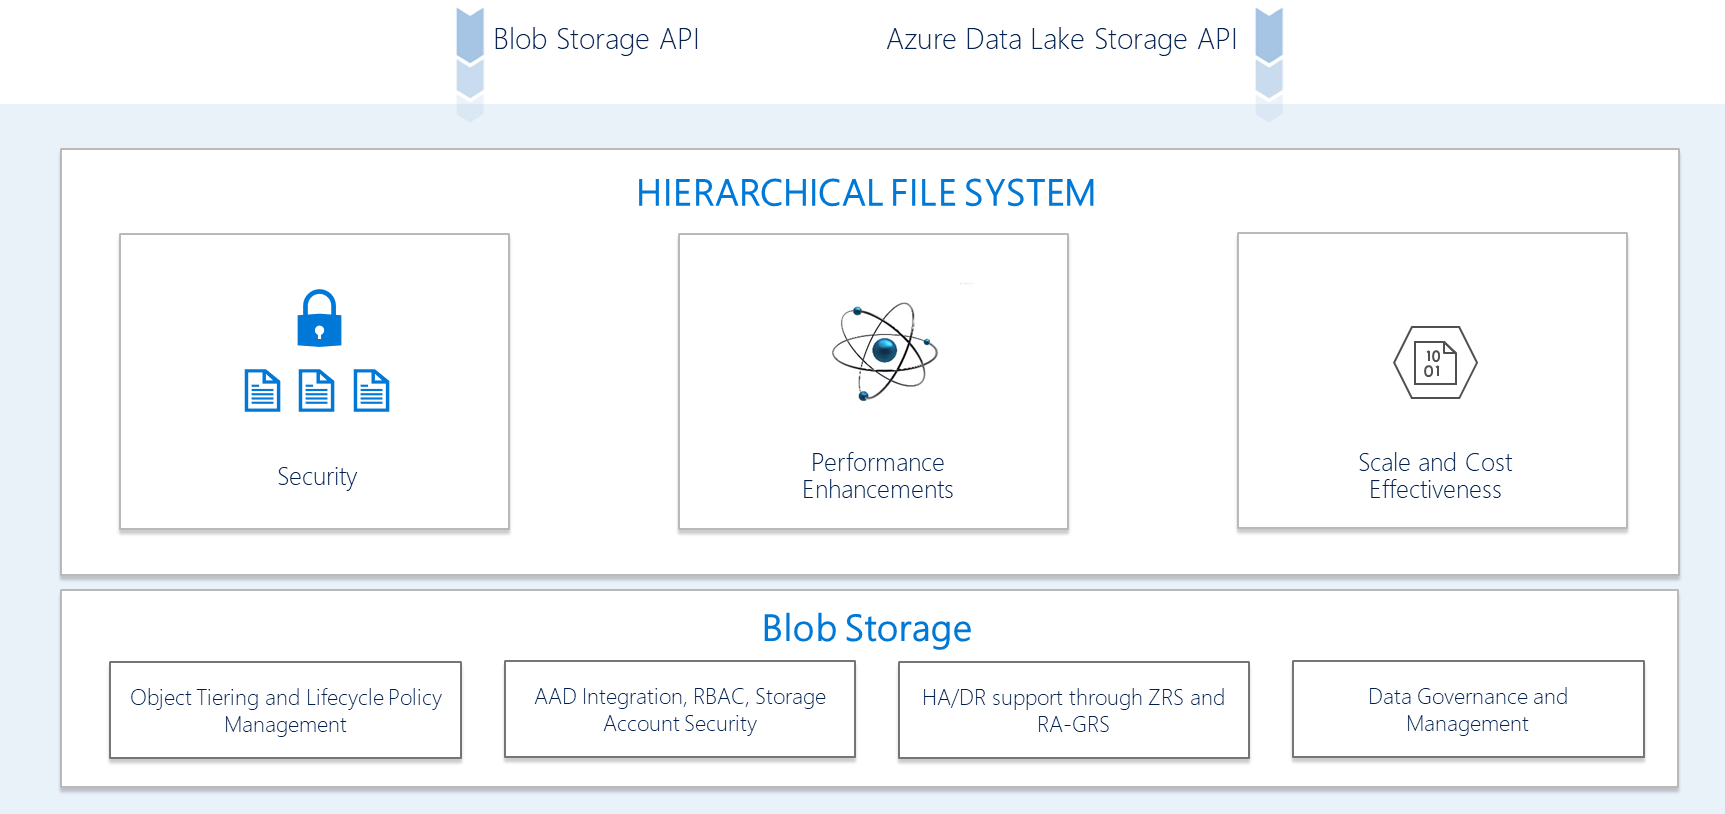 Both the Blob storage API and Azure Data Lake Storage API go through the Hierarchical Namespace, which is built on top of Blob storage.